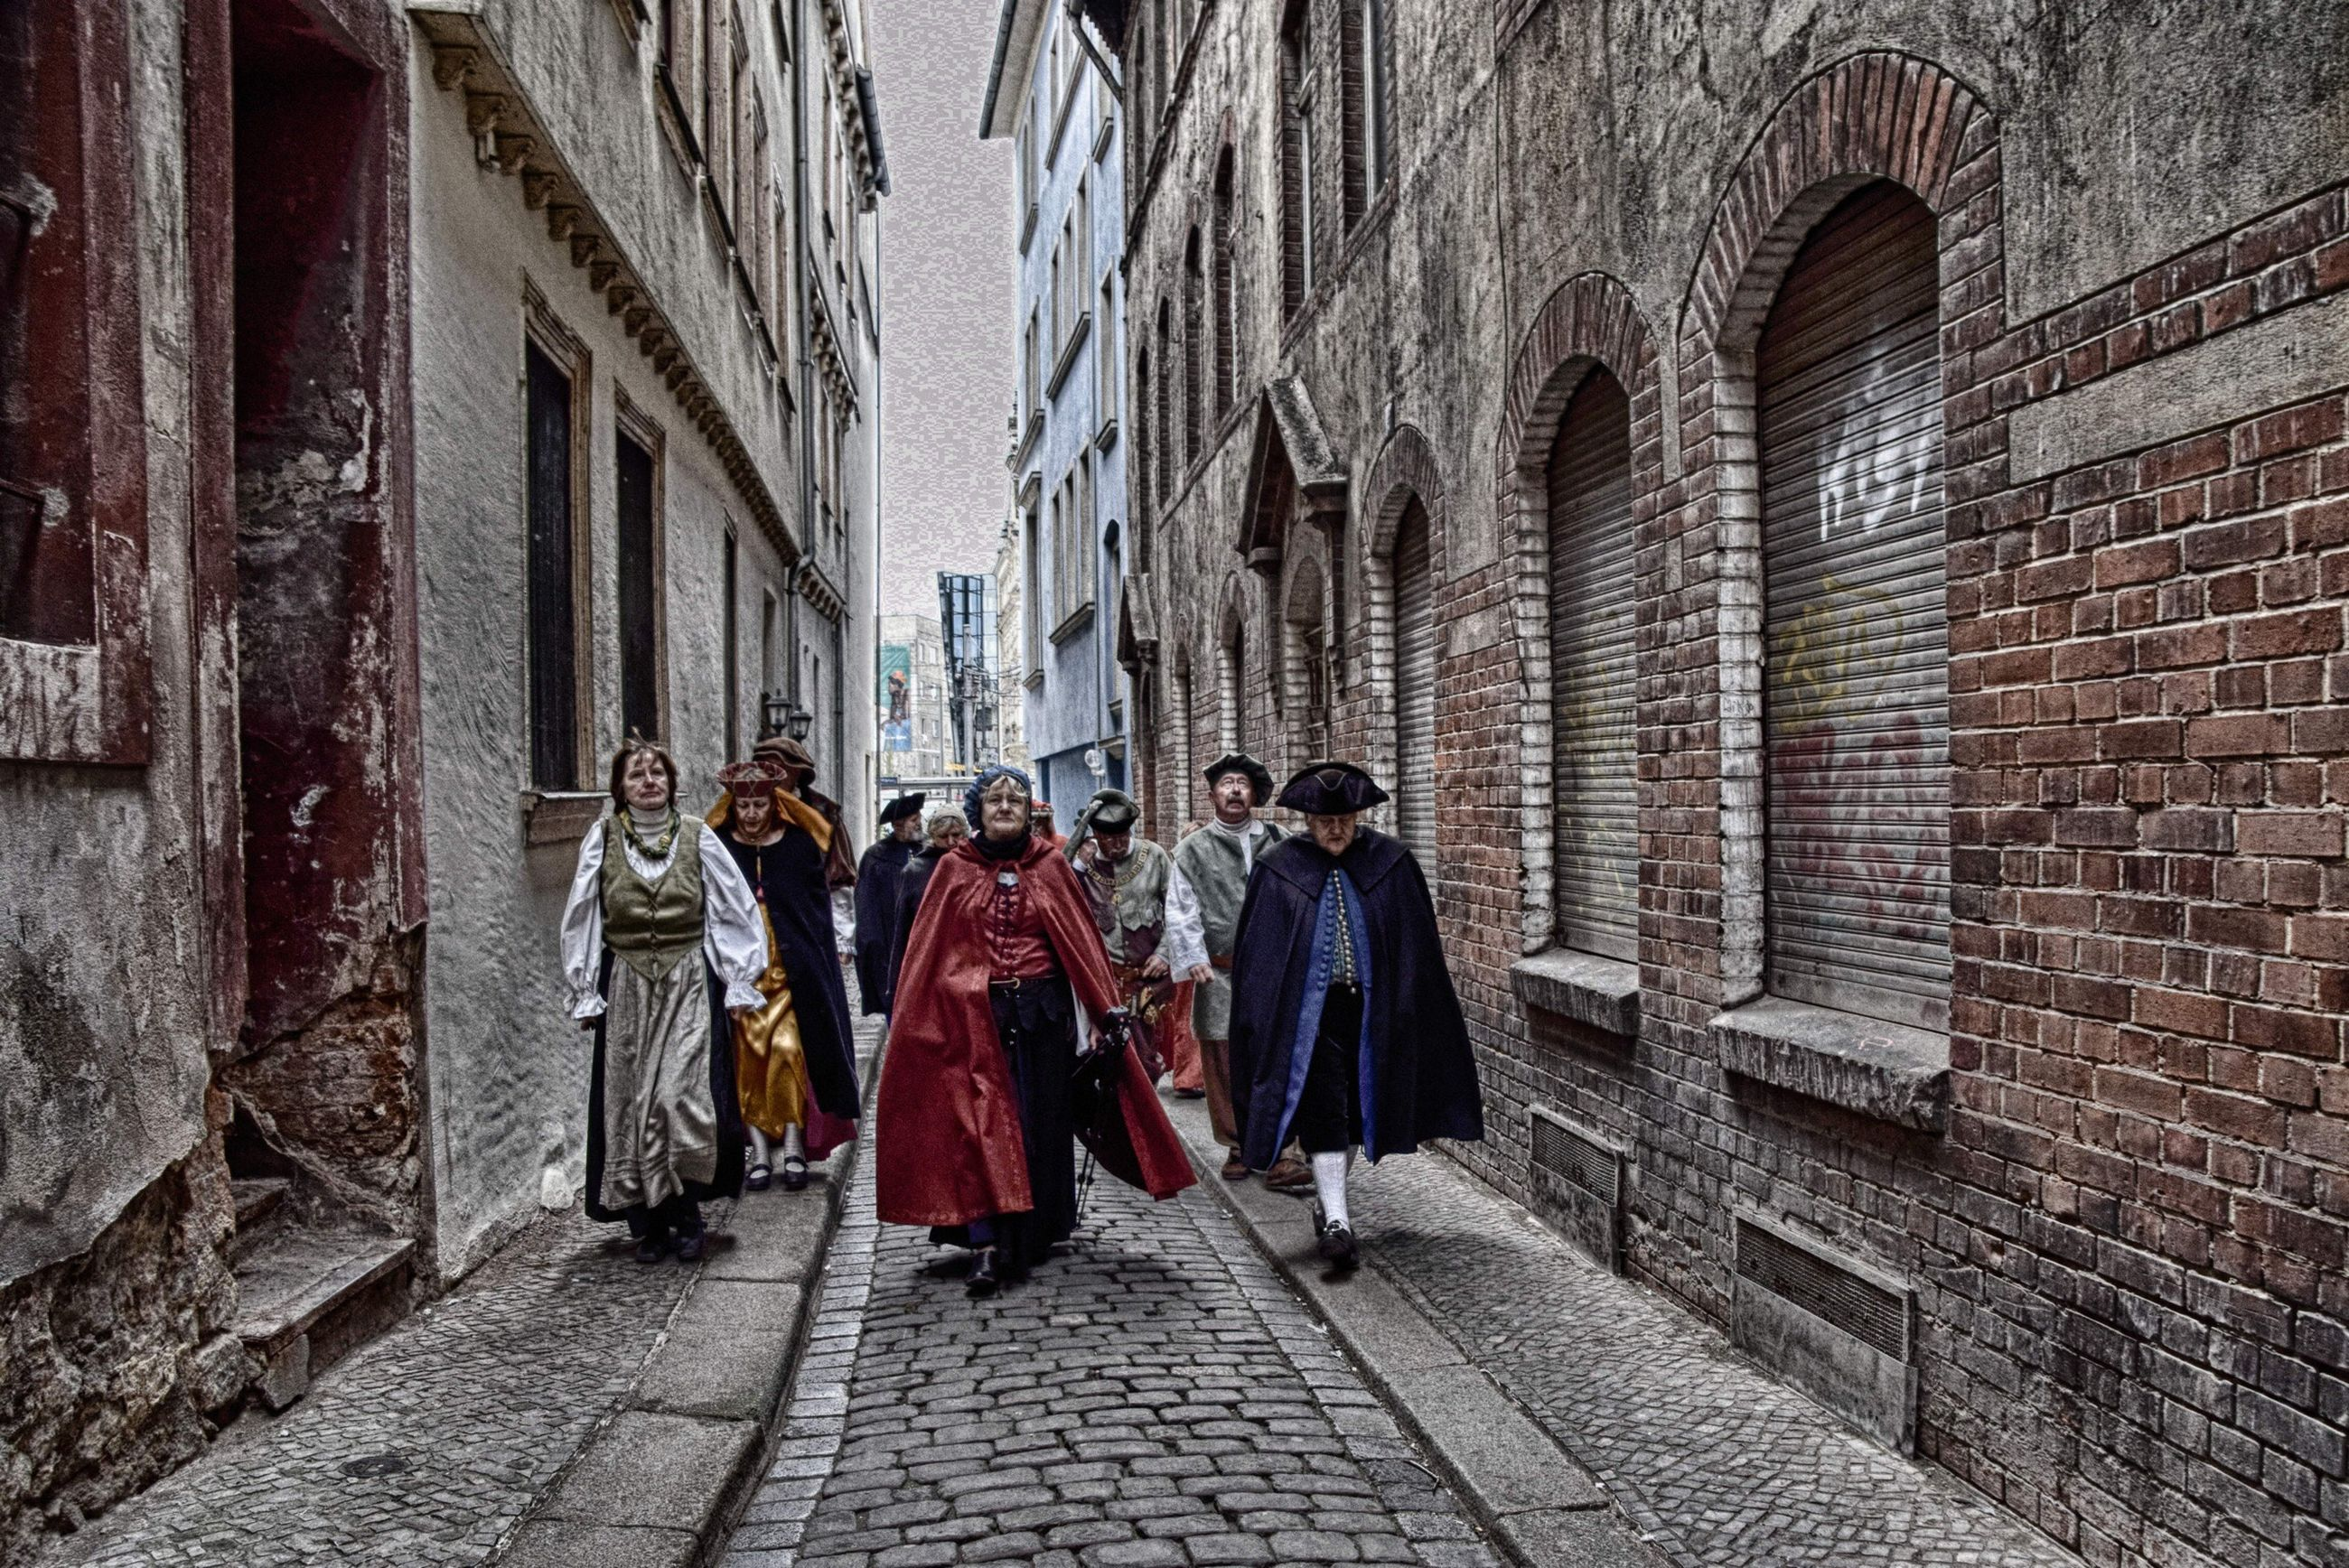 architecture, group of people, building exterior, full length, built structure, togetherness, city, clothing, women, adult, street, walking, people, day, brick, females, traditional clothing, real people, religion, building, outdoors, arch